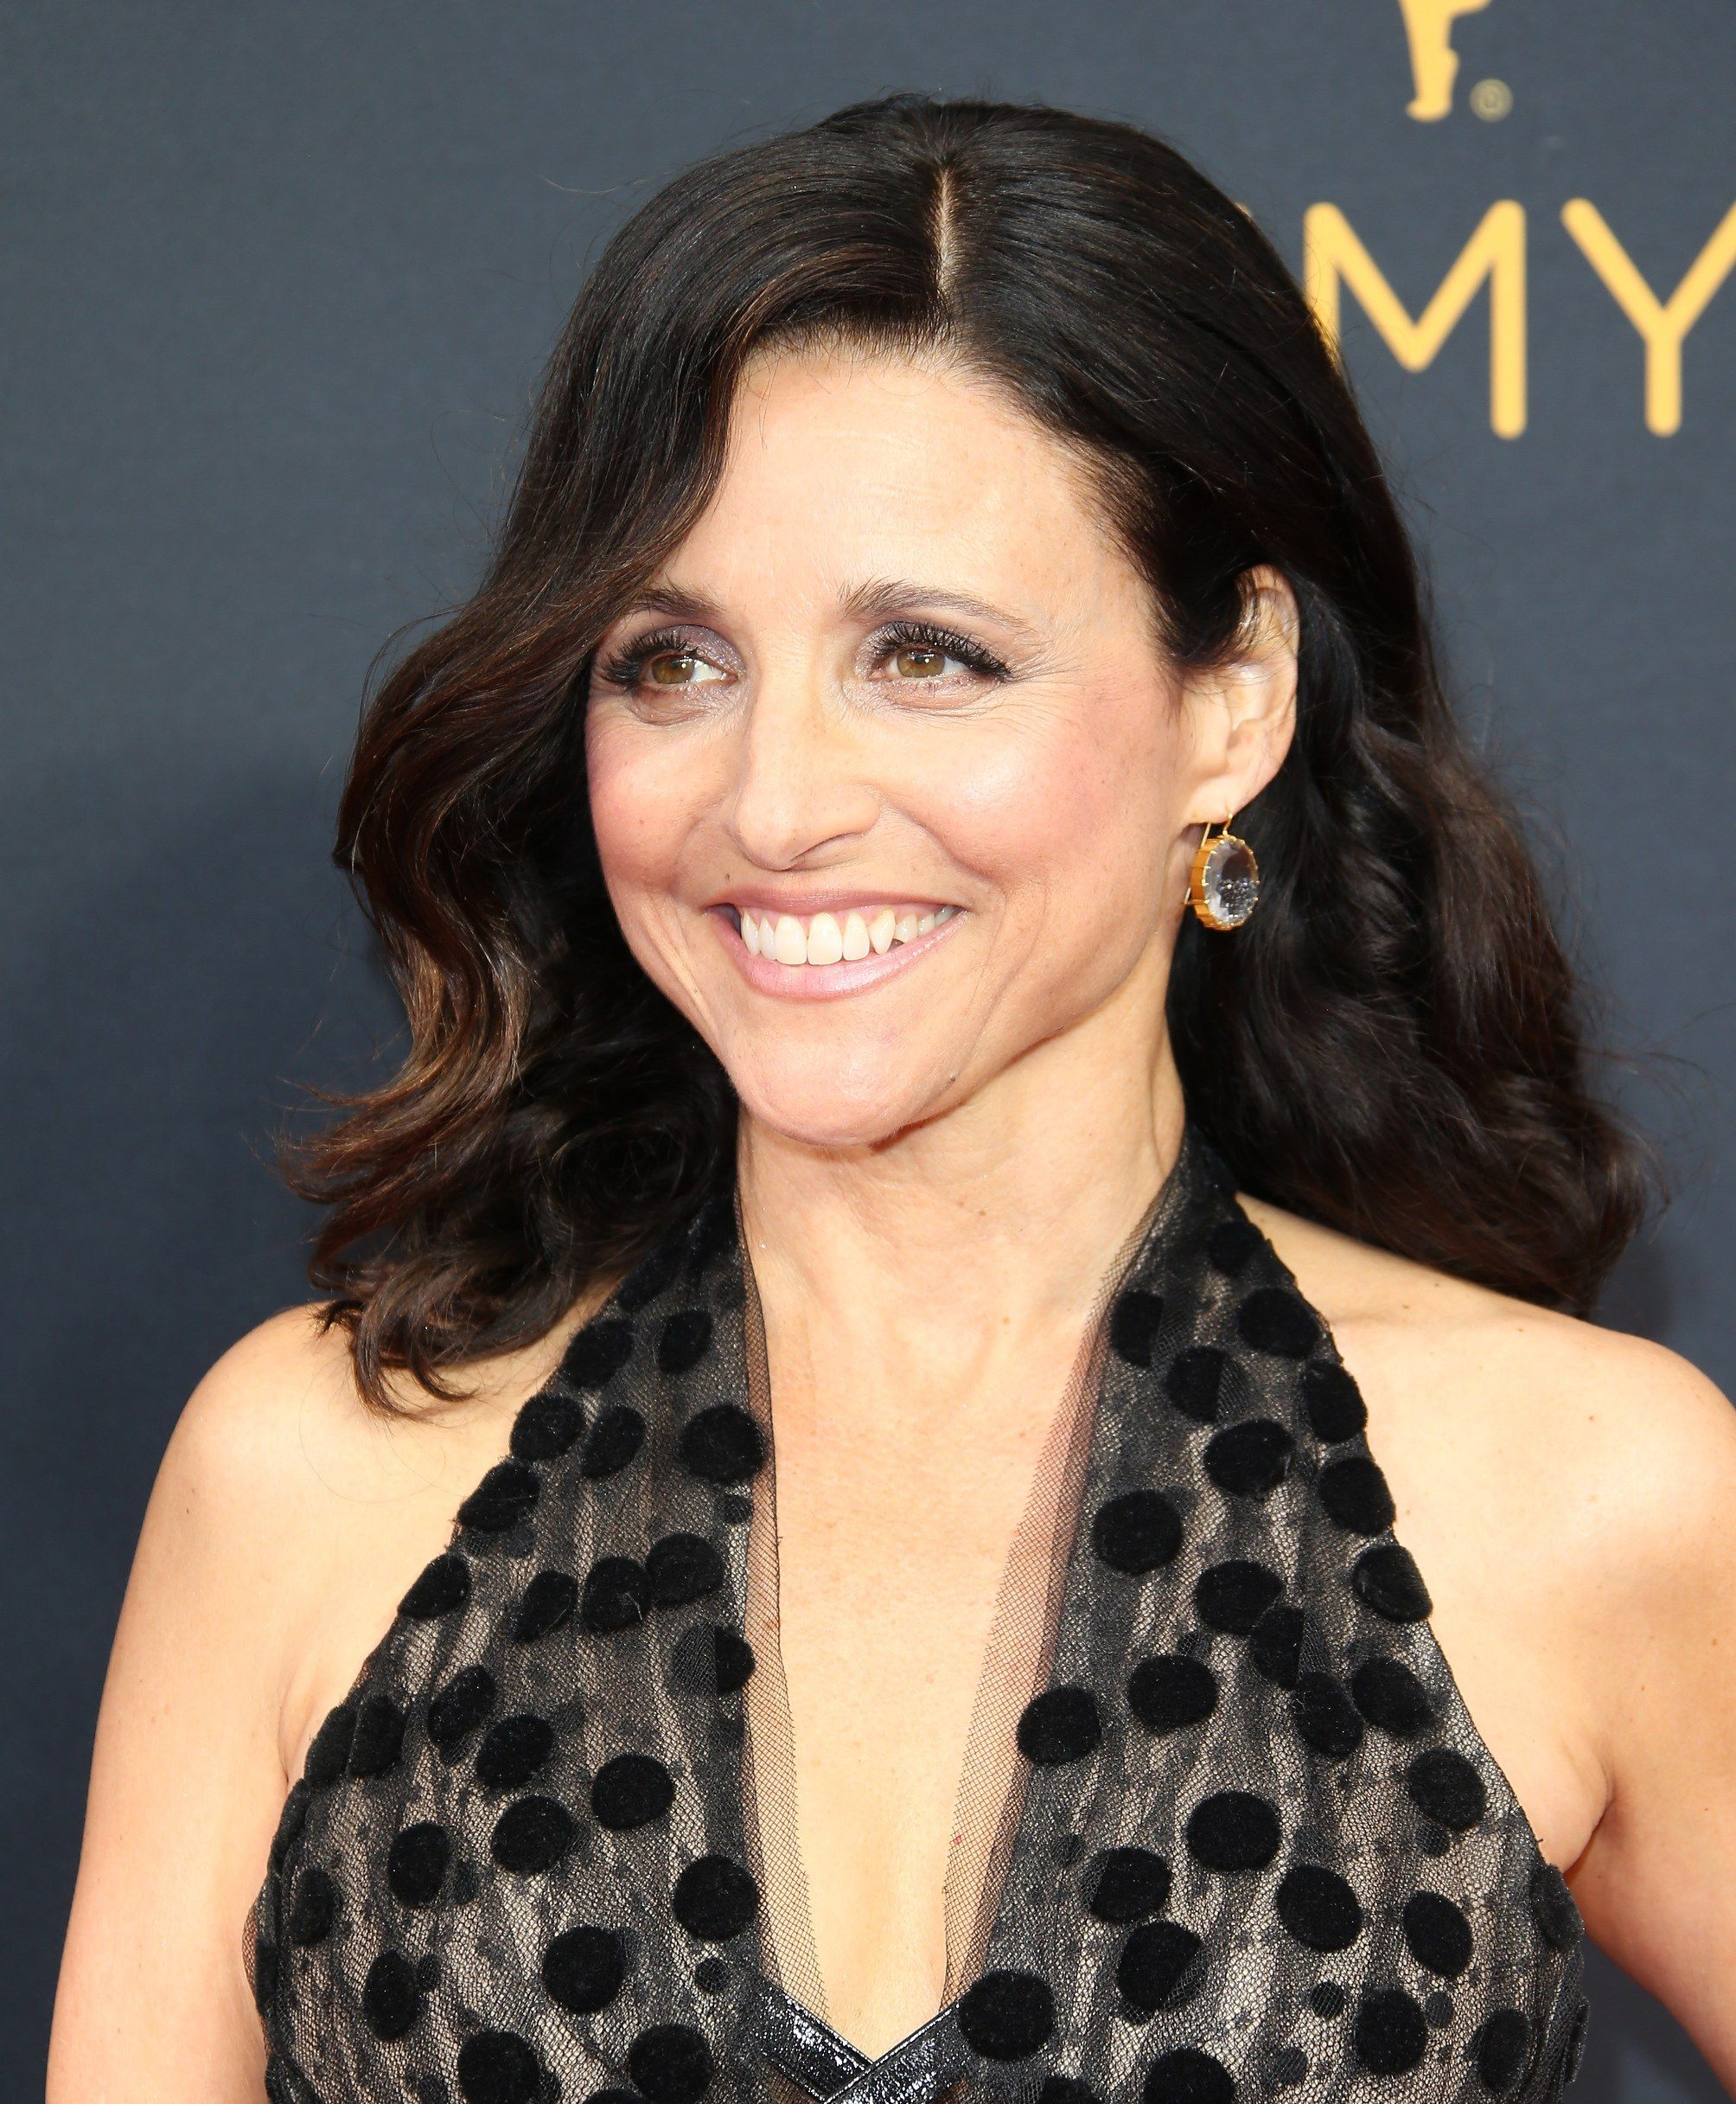 Julia Louis Dreyfus S Hair Evolution From Seinfeld To Veep Hair Evolution Julia Louis Dreyfus Womens Hairstyles